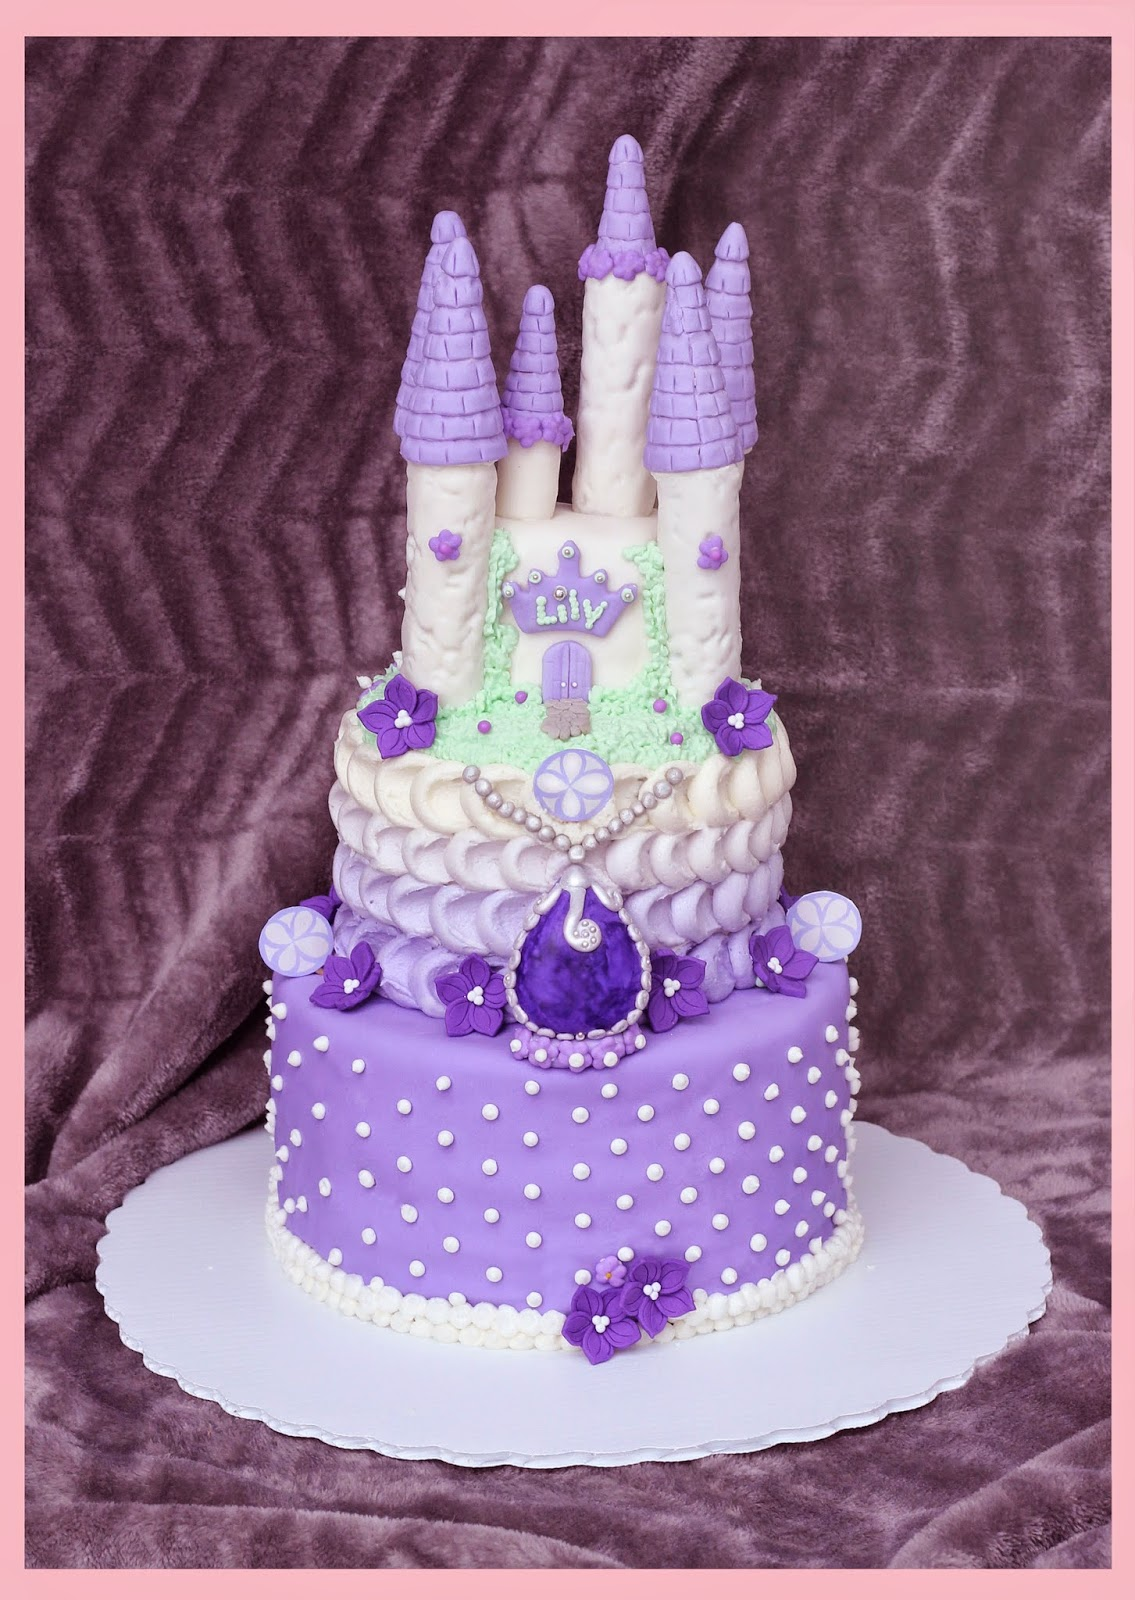 Treese Love Happiness Sofia The First Cake